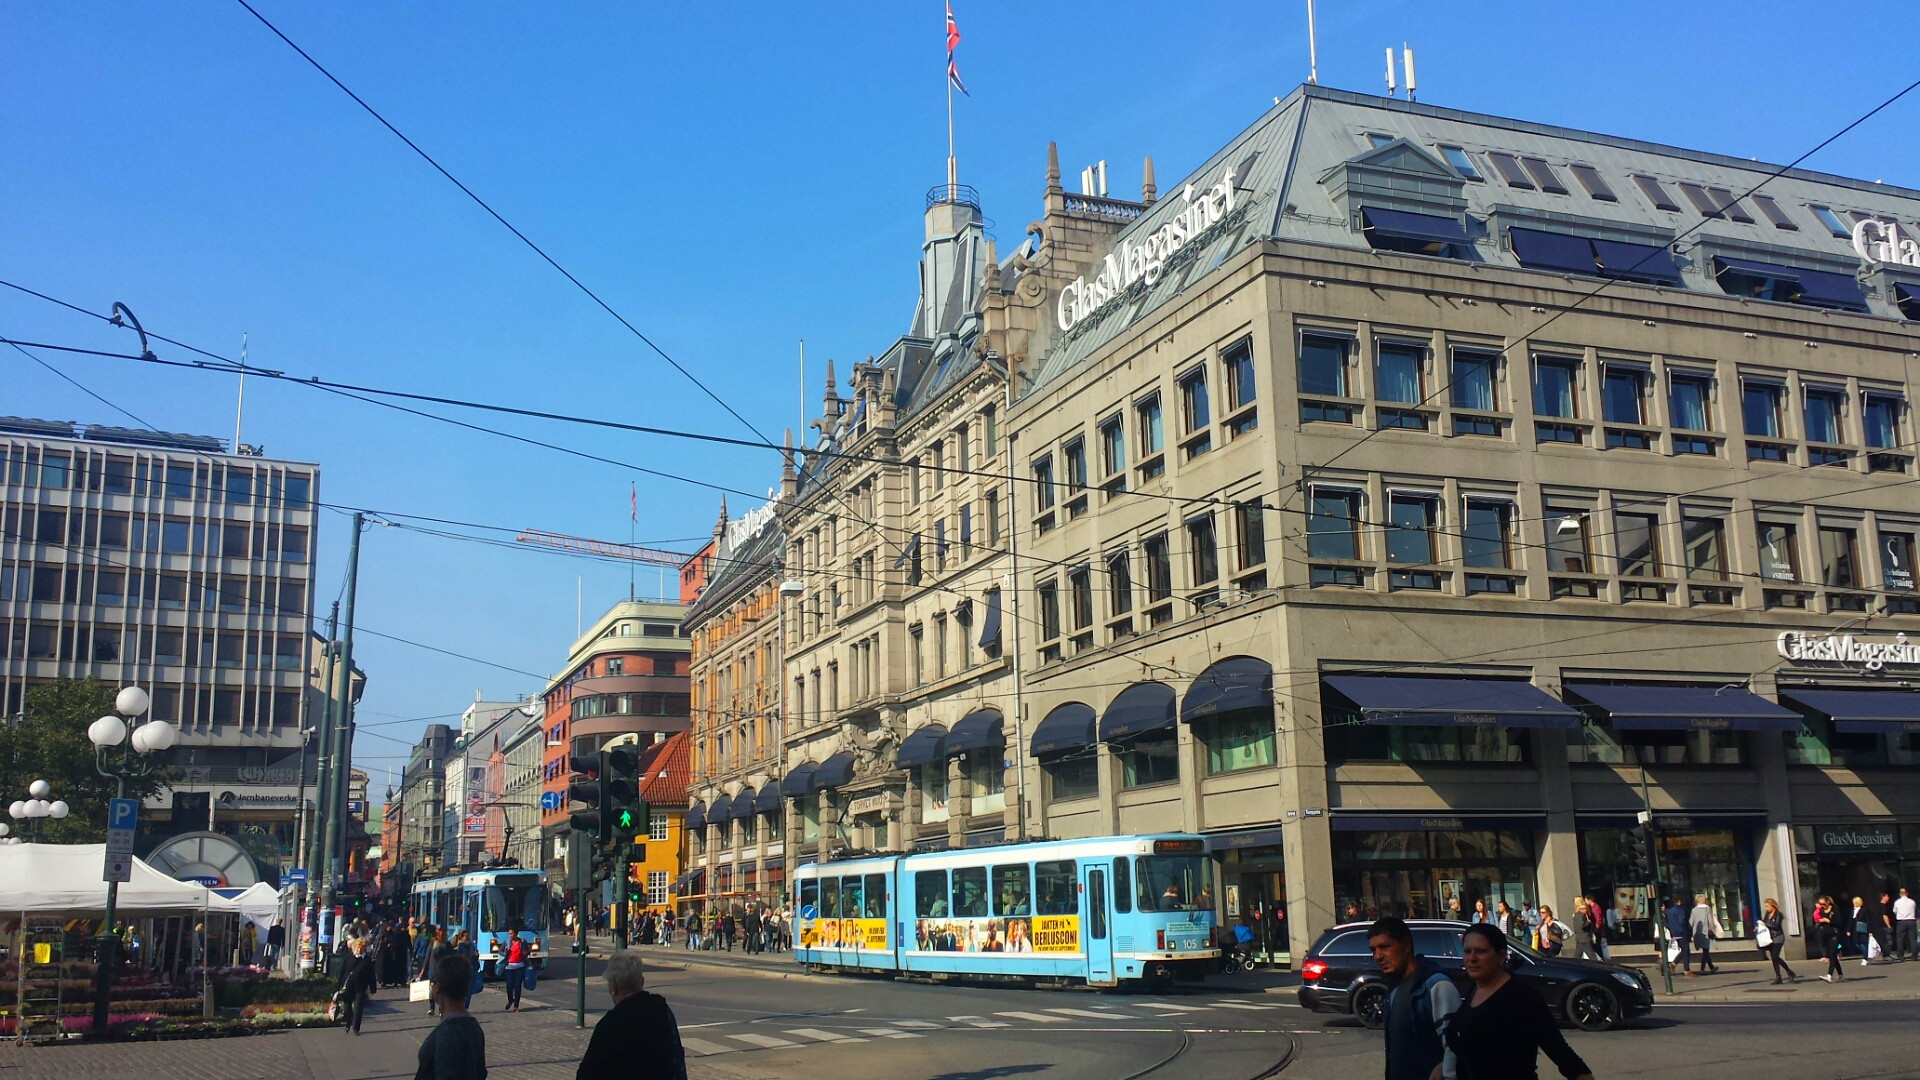 Hello, Oslo! How To Spend A Day Exploring Norway's Hip Capital City